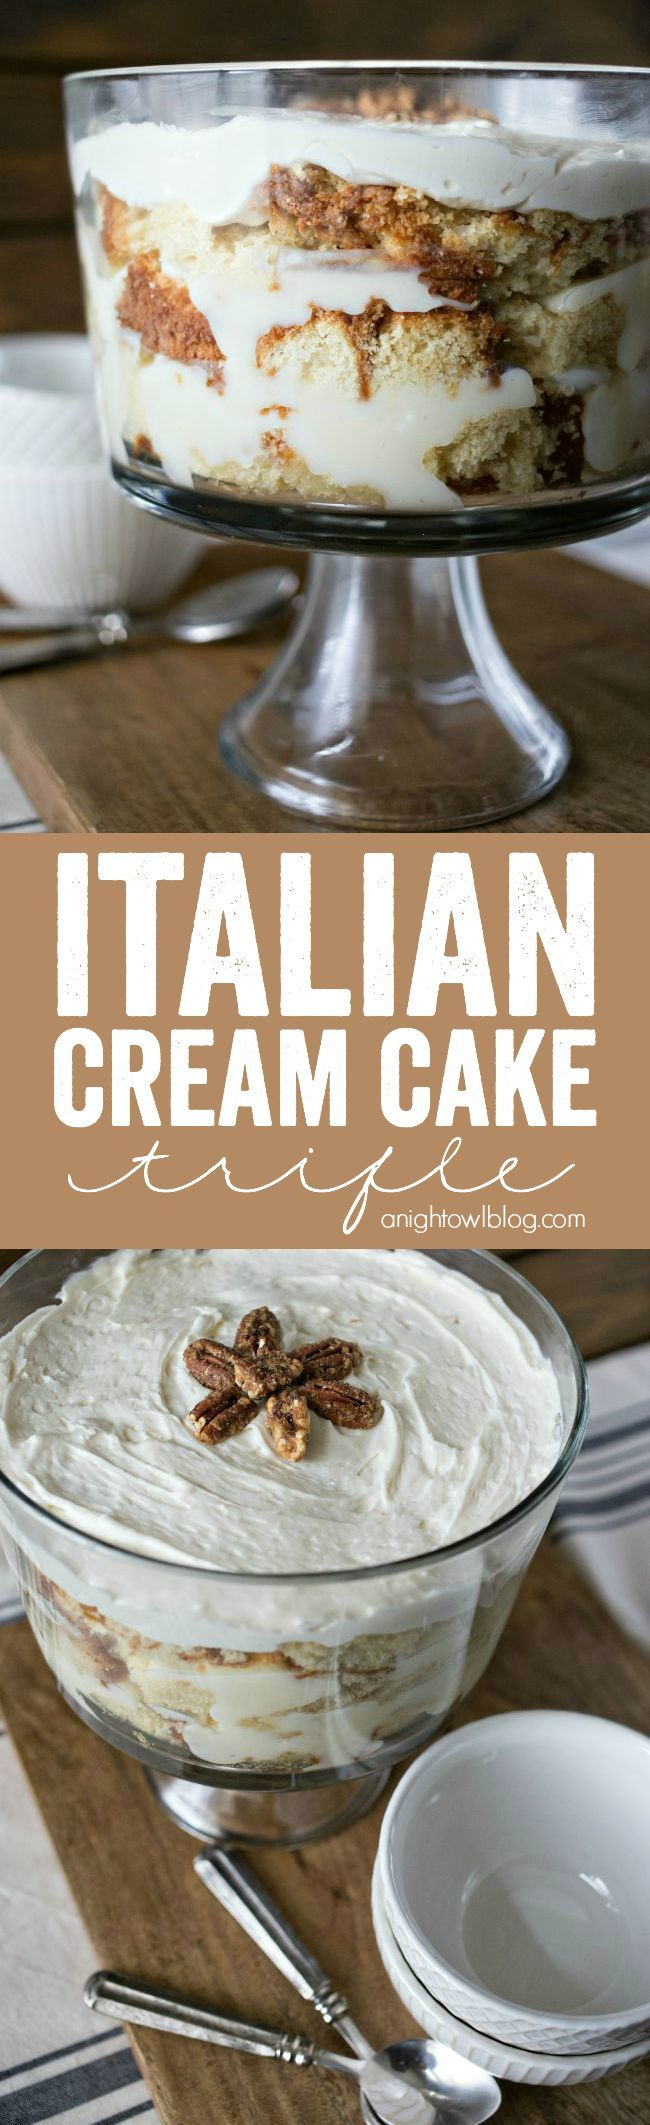 Italian Cream Cake Trifle - a delicious twist on a popular and decadent Italian dessert. | A Night Owl Blog     ᘡղbᘠ